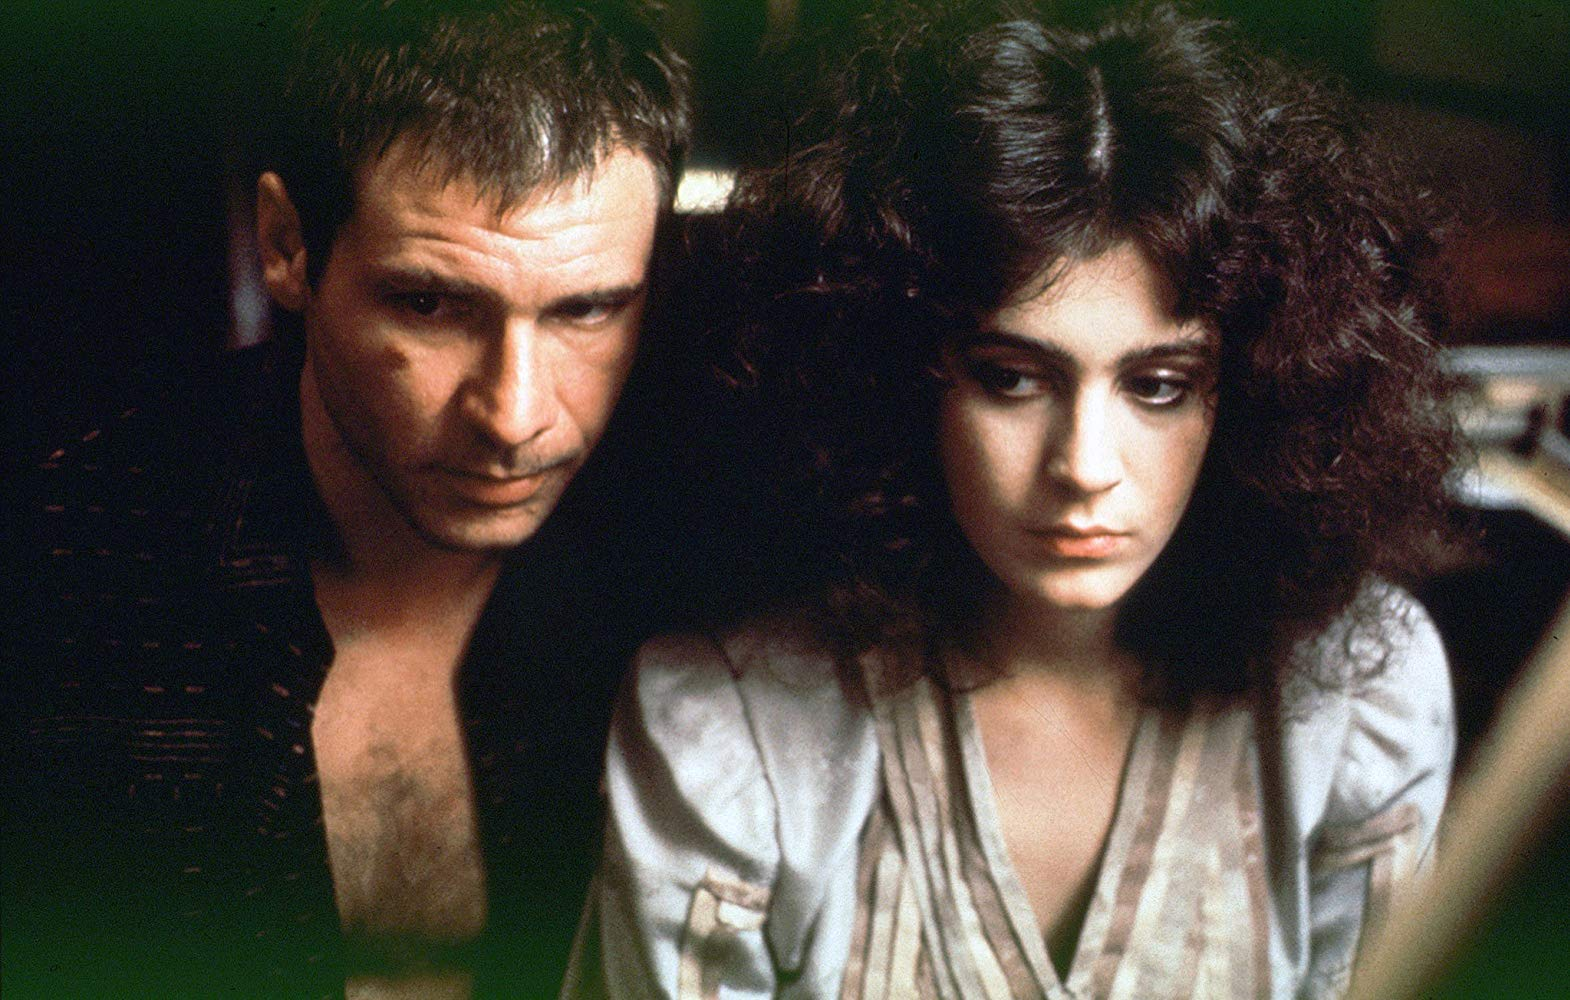 Harrison Ford and Sean Young in Blade Runner © 1982 Warner Bros. Ent. All Rights Reserved